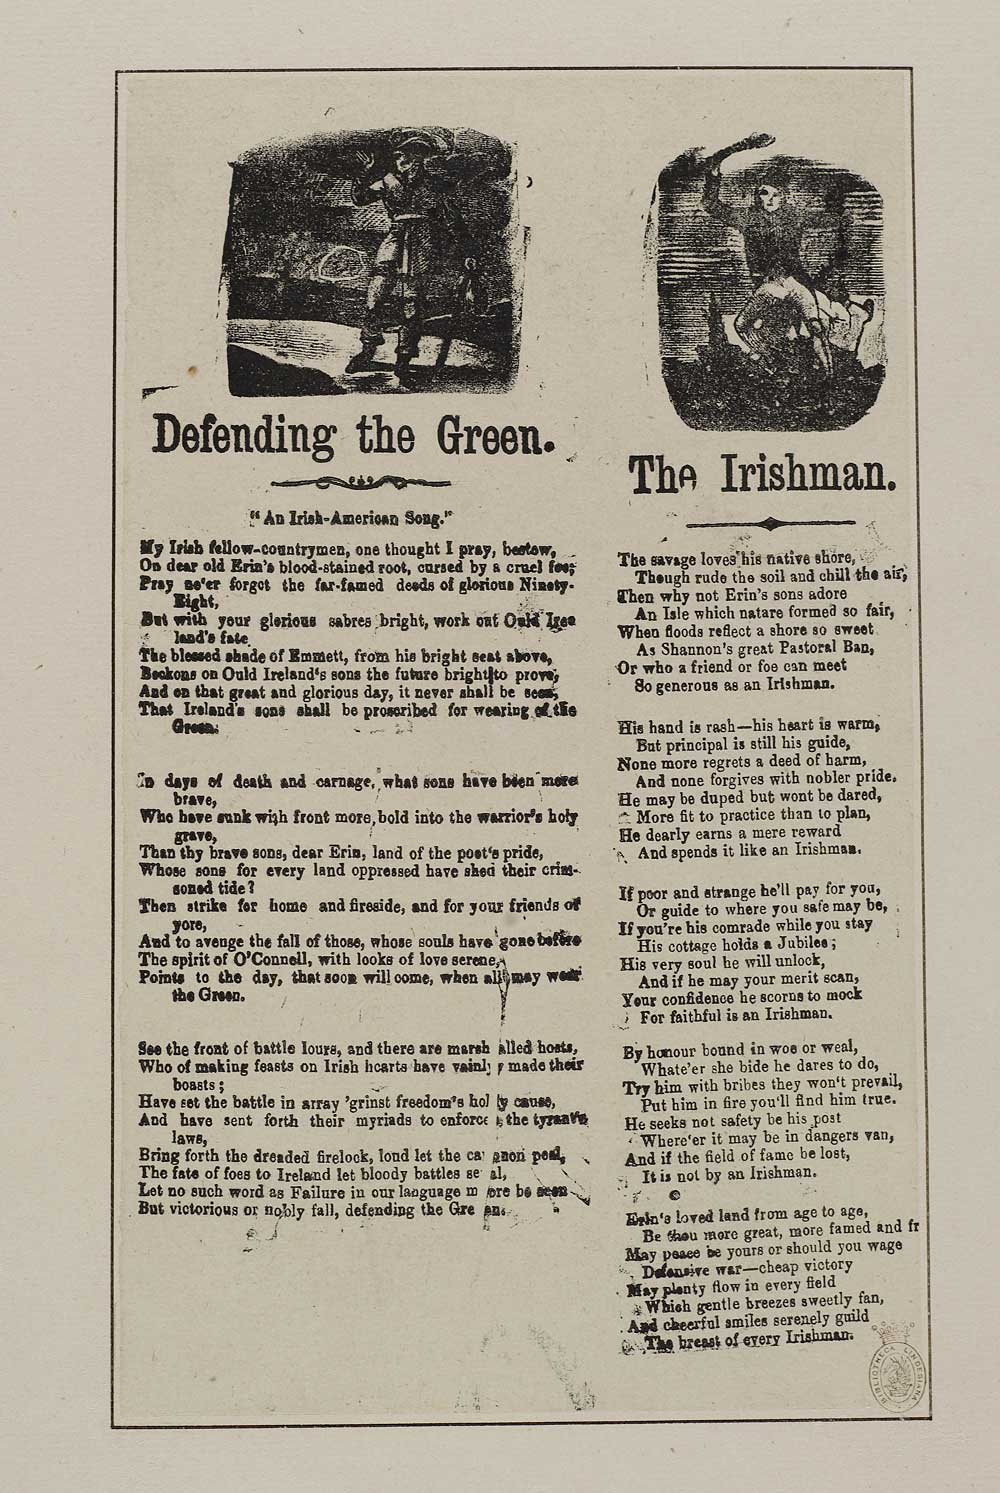 Defending the green - Ireland - English ballads - National